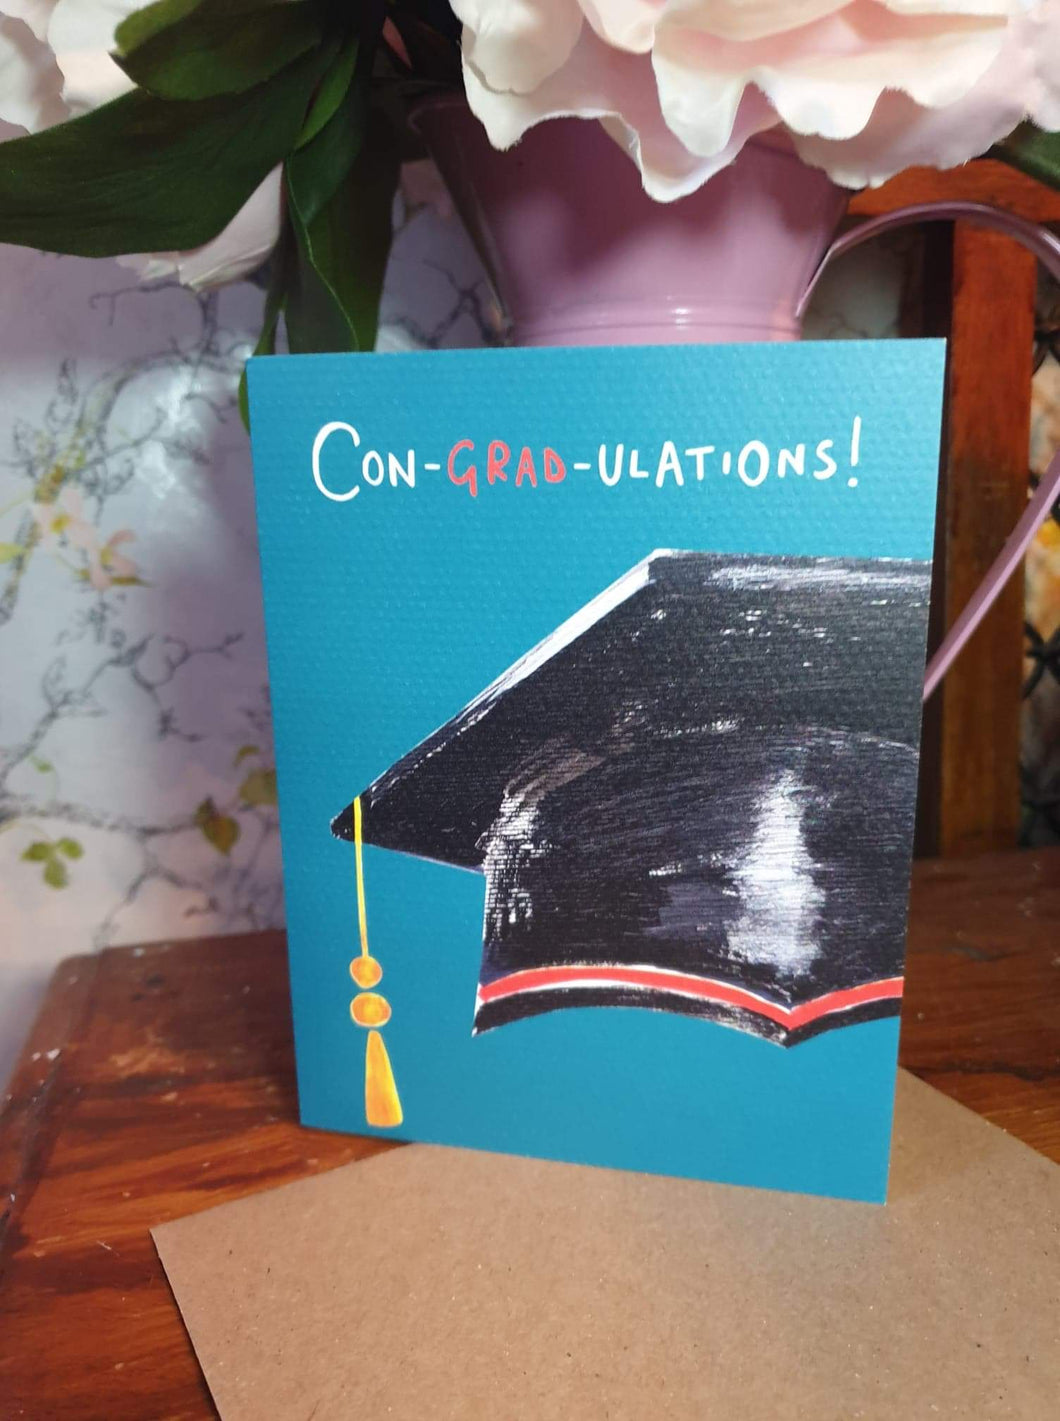 'Con-grad-ulations' Card